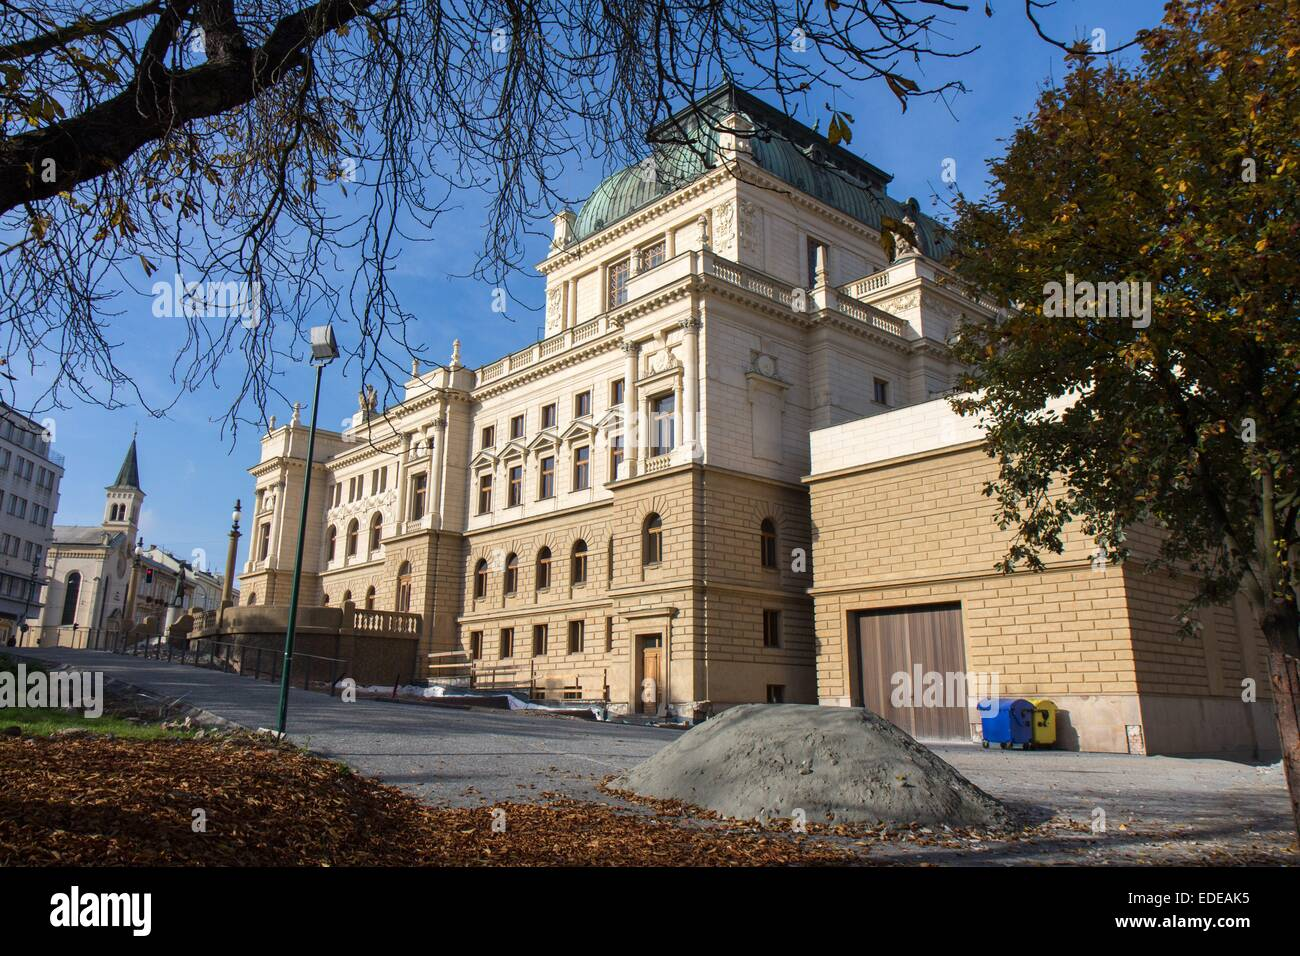 Czech Republic: Great Theatre in the center of Plzen. Photo from 8. November 2014 - Stock Image